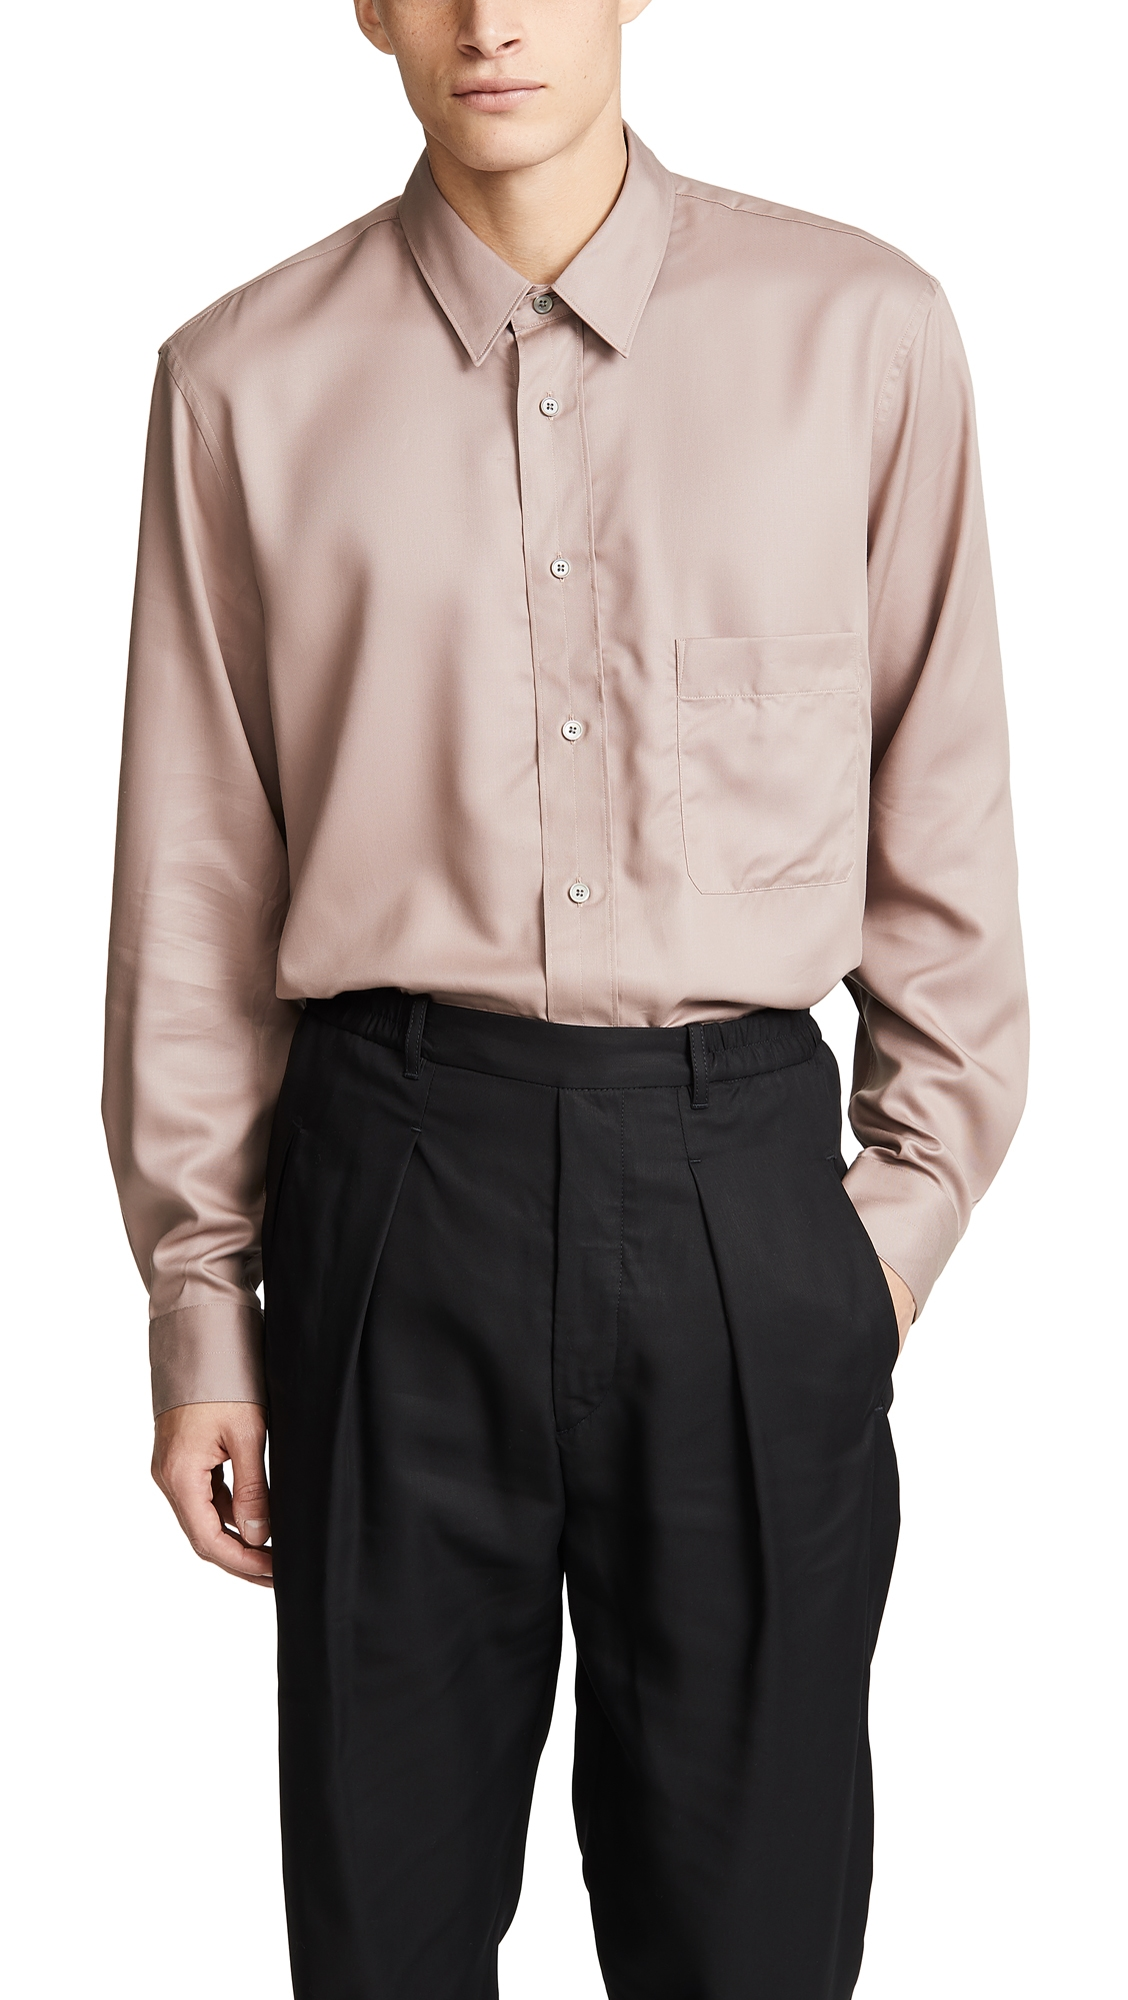 LEMAIRE Straight Collar Shirt in Neutrals